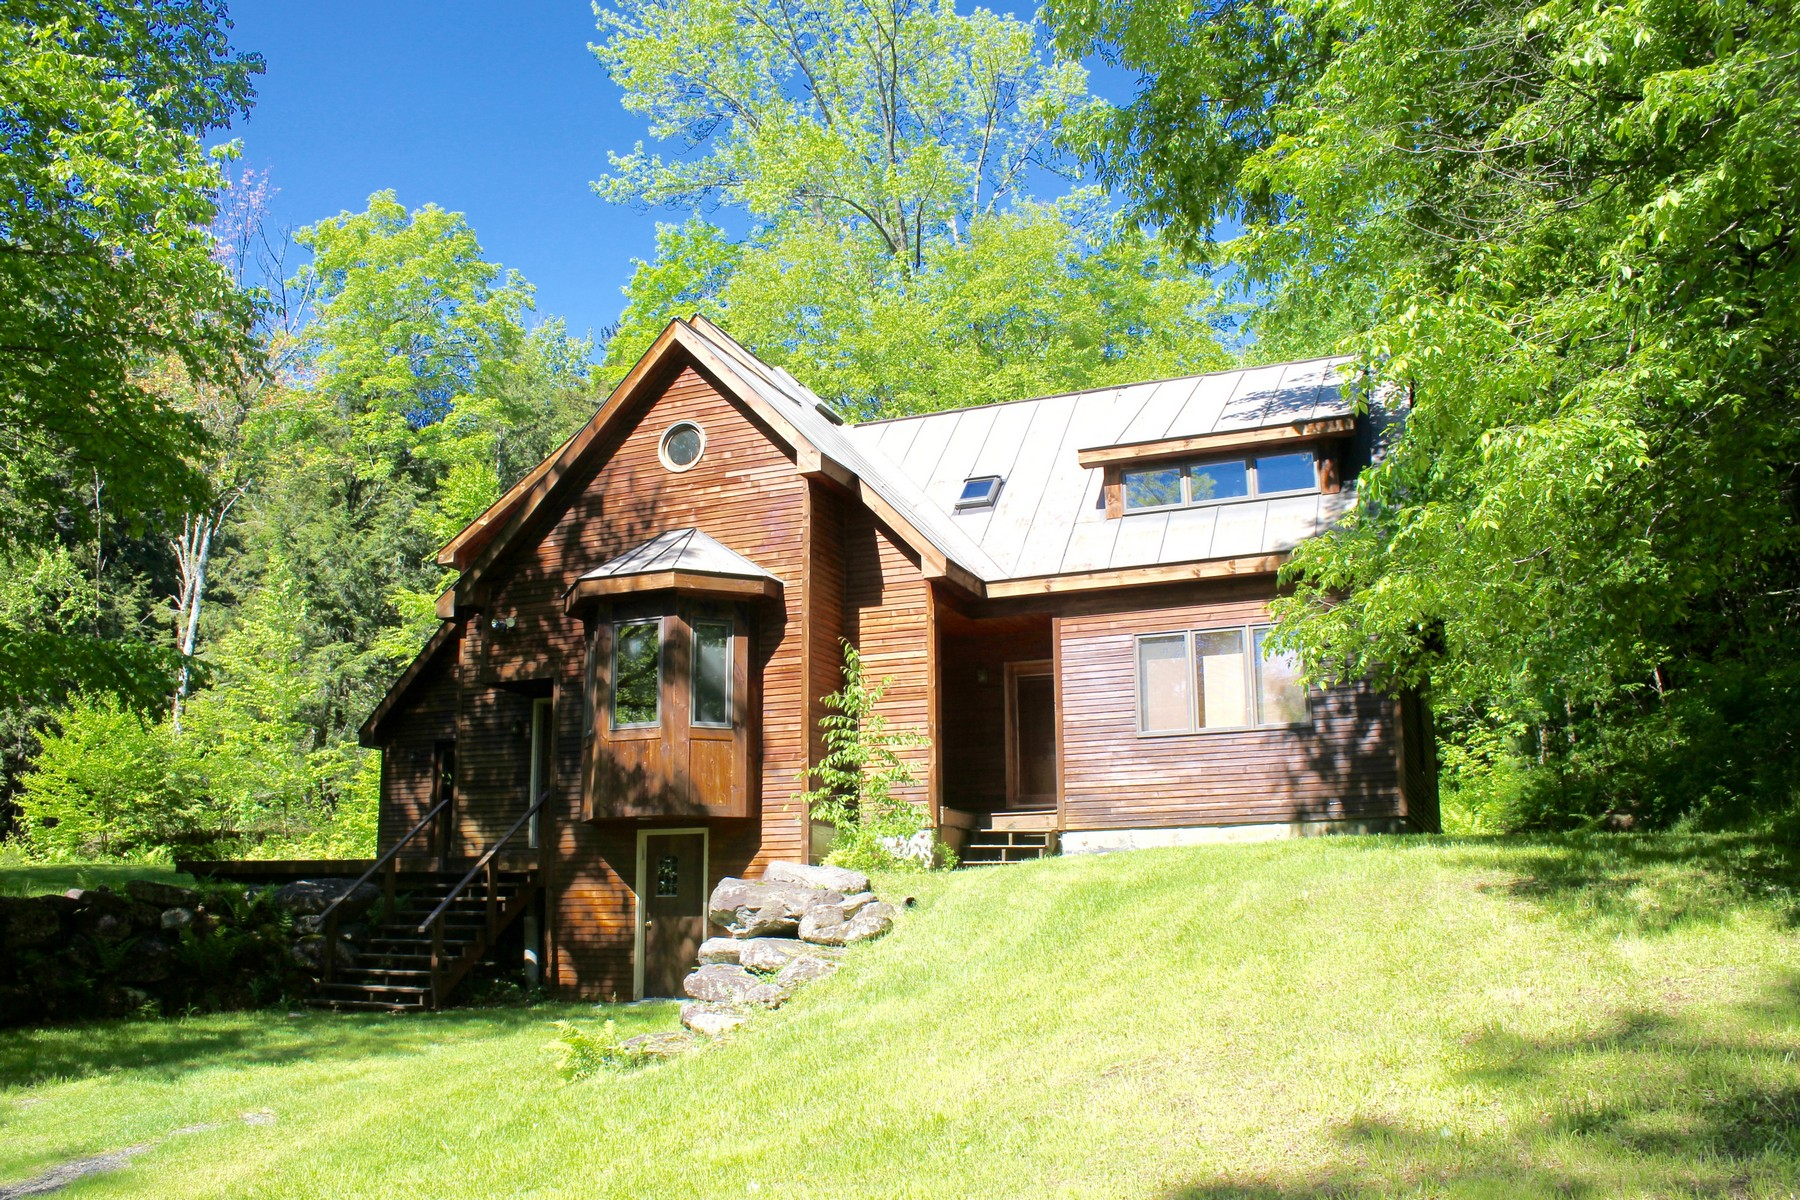 Single Family Home for Sale at A peaceful retreat in Southern Vermont! 170 Frog City Rd Plymouth, Vermont 05056 United States